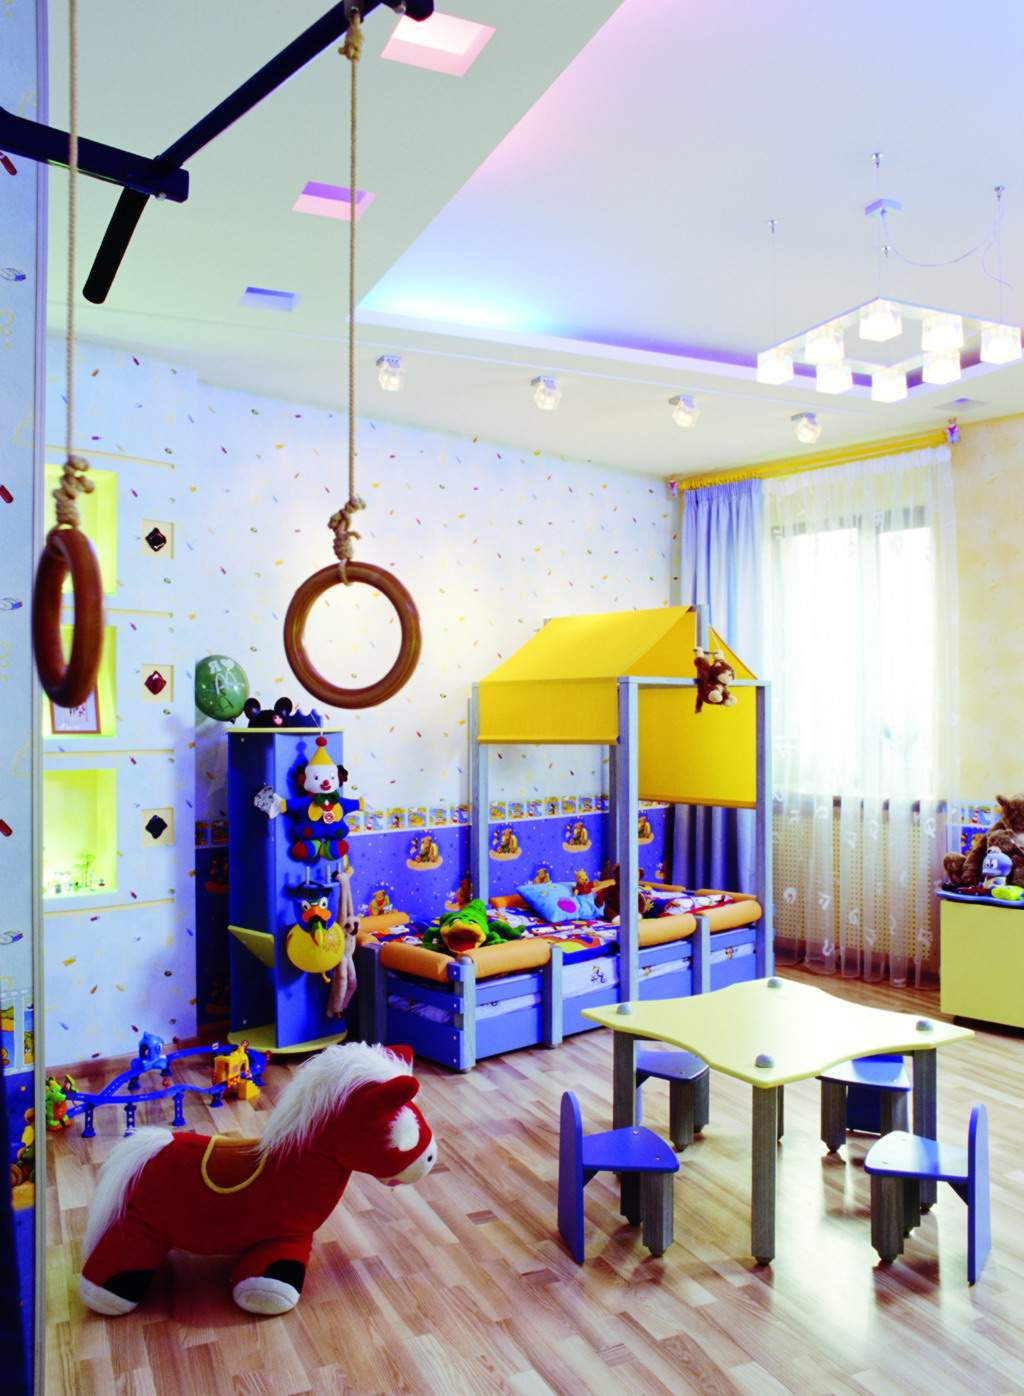 15 creative kids bedroom decorating ideas - Children bedrooms ...